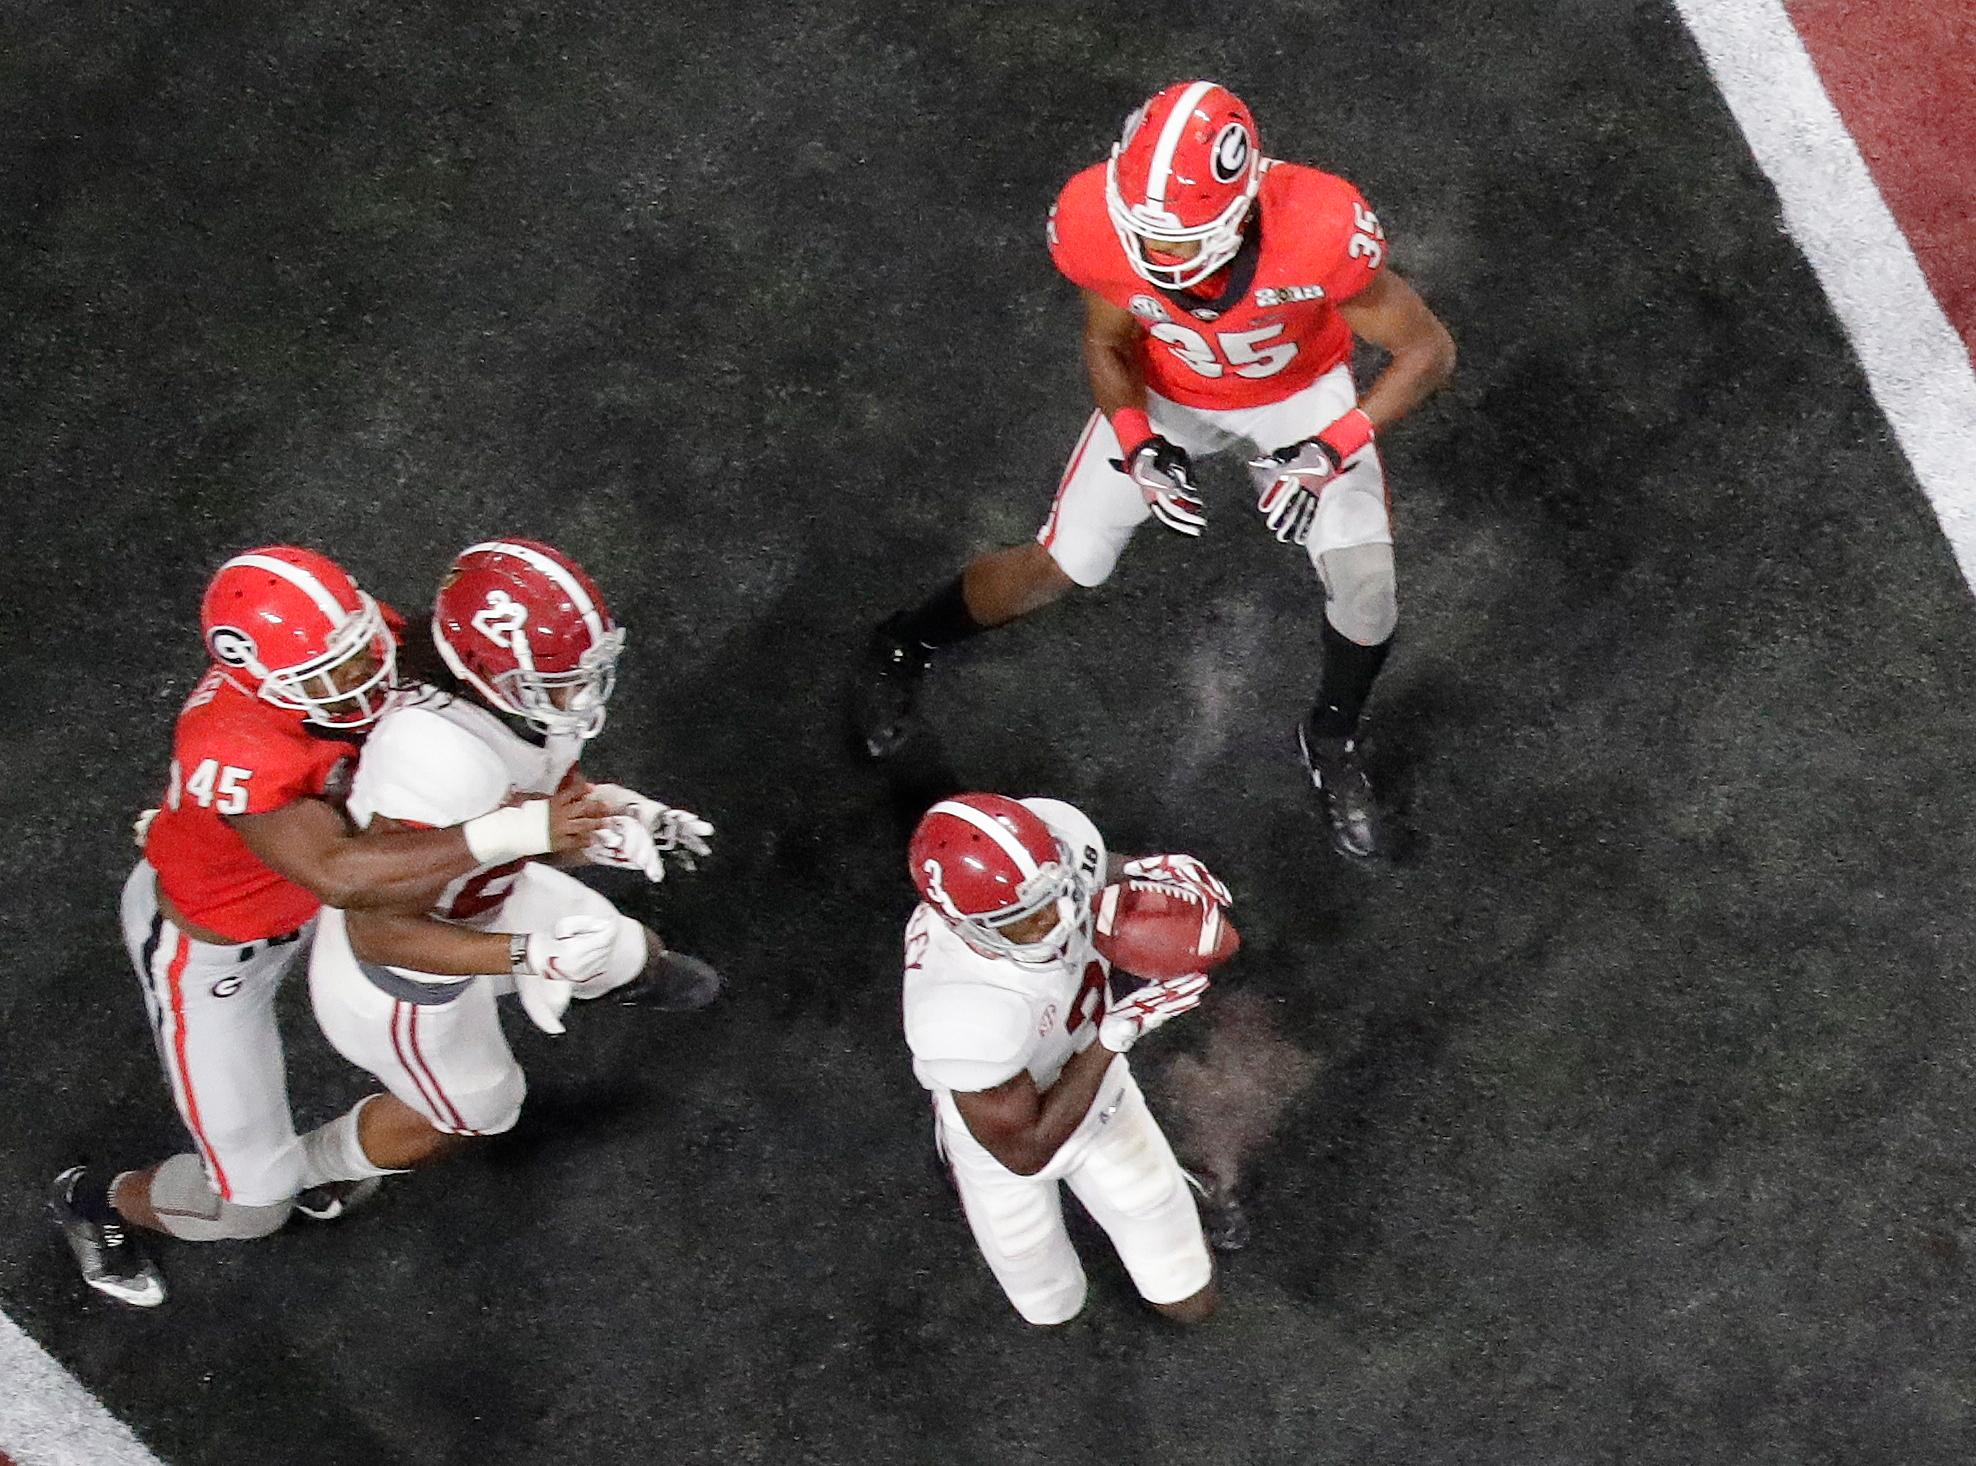 Alabama's Calvin Ridley catches a touchdown pass during the second half of the NCAA college football playoff championship game against Georgia Monday, Jan. 8, 2018, in Atlanta. (AP Photo/John Bazemore)